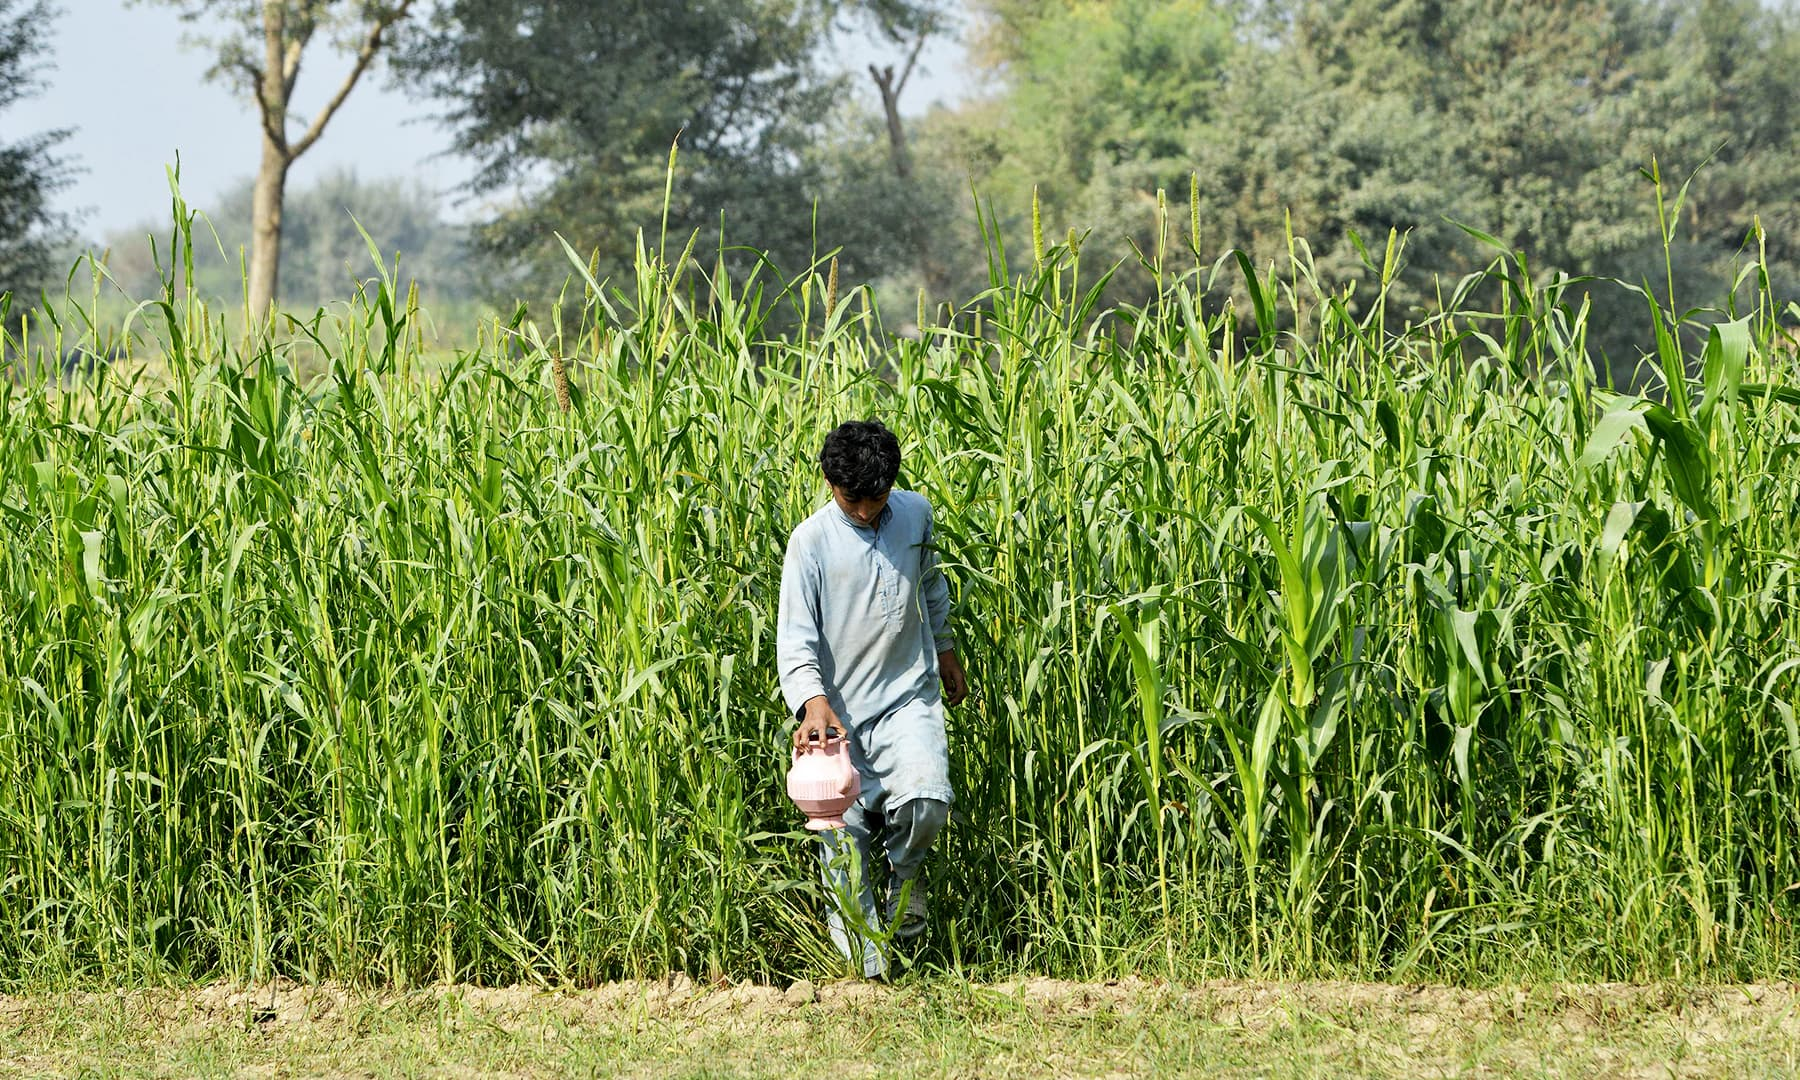 A youngster holds a toilet wash jug as he comes out after 'going' in the fields. —AFP